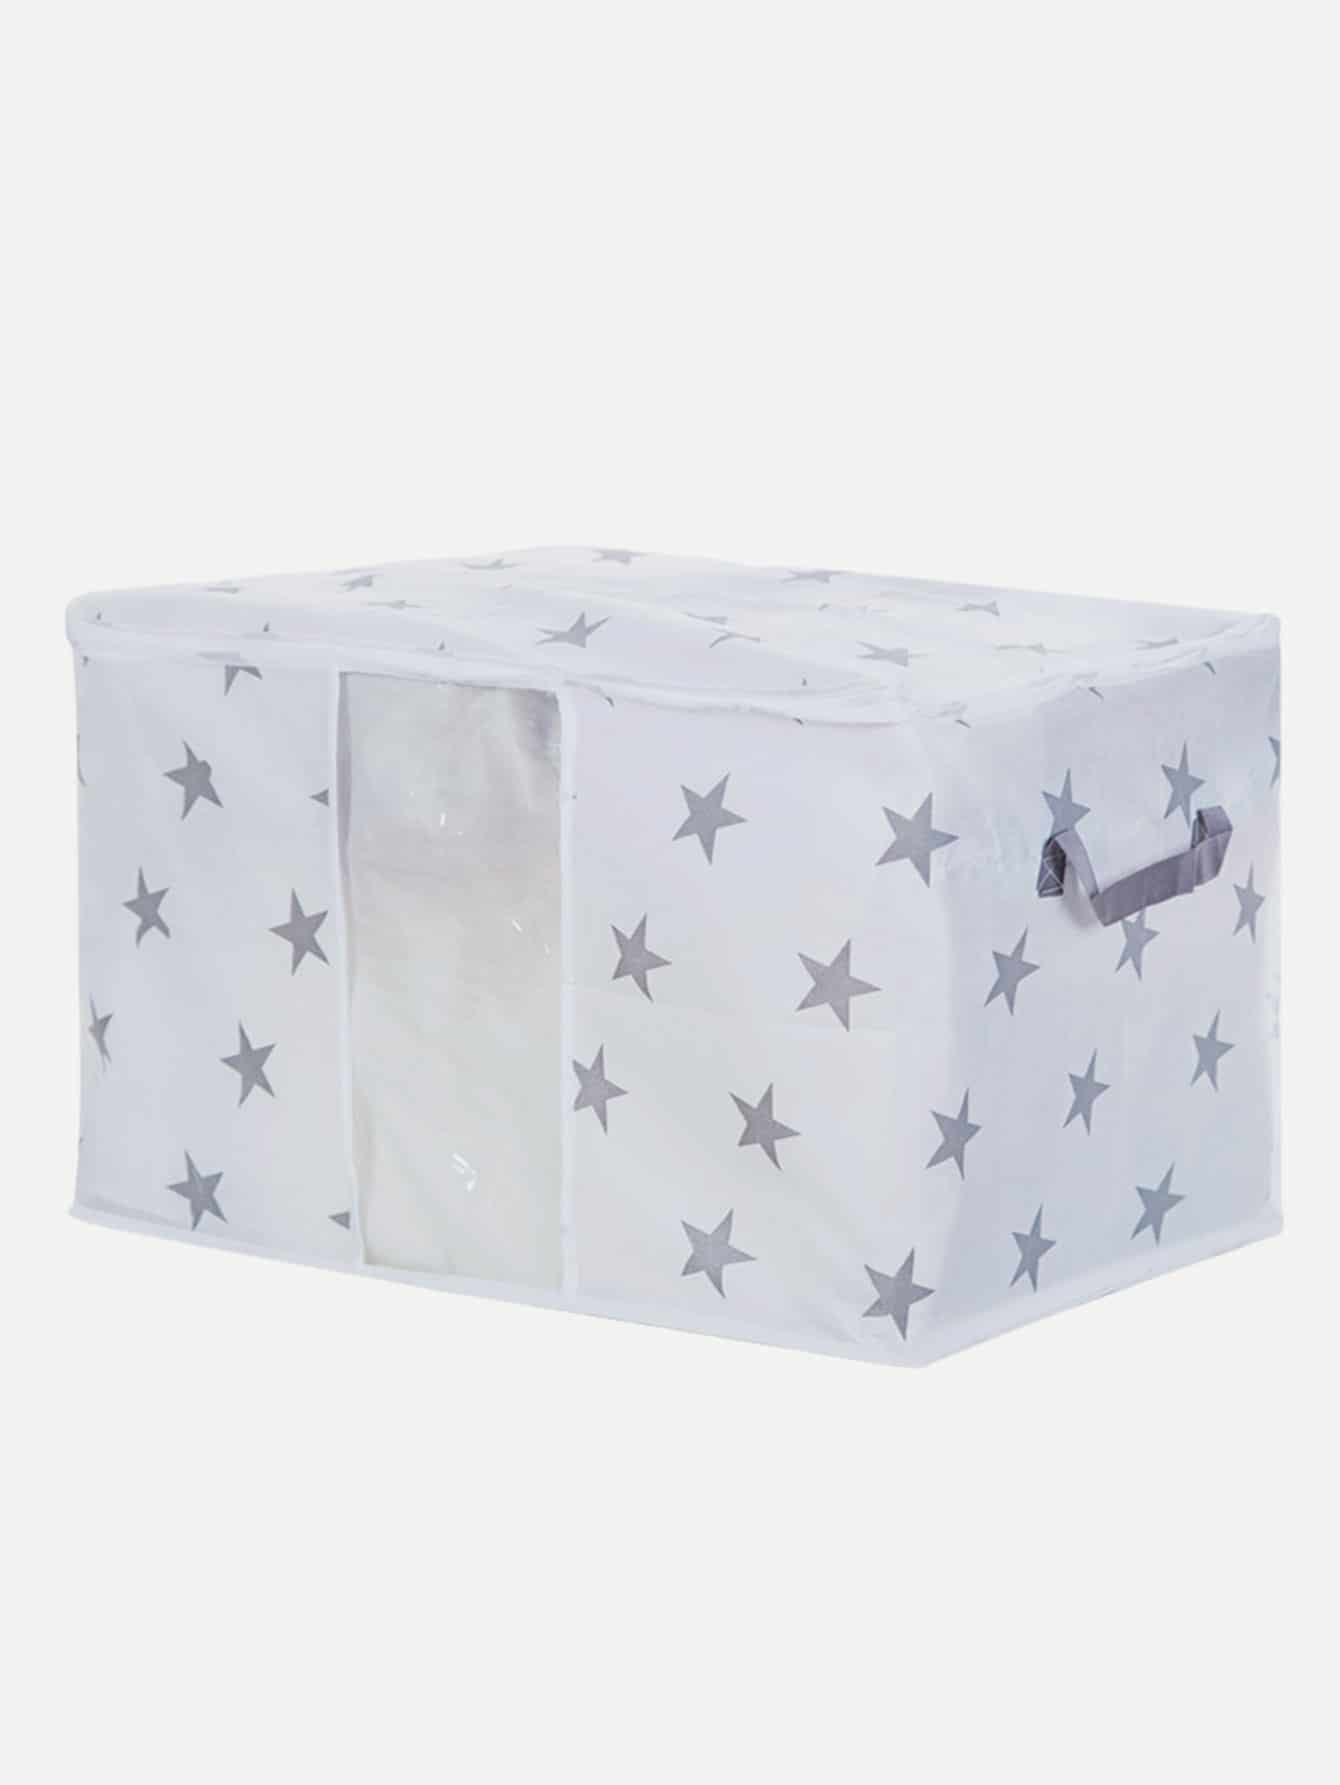 Star Print Quilt Dust Cover star print refrigerator dust cover